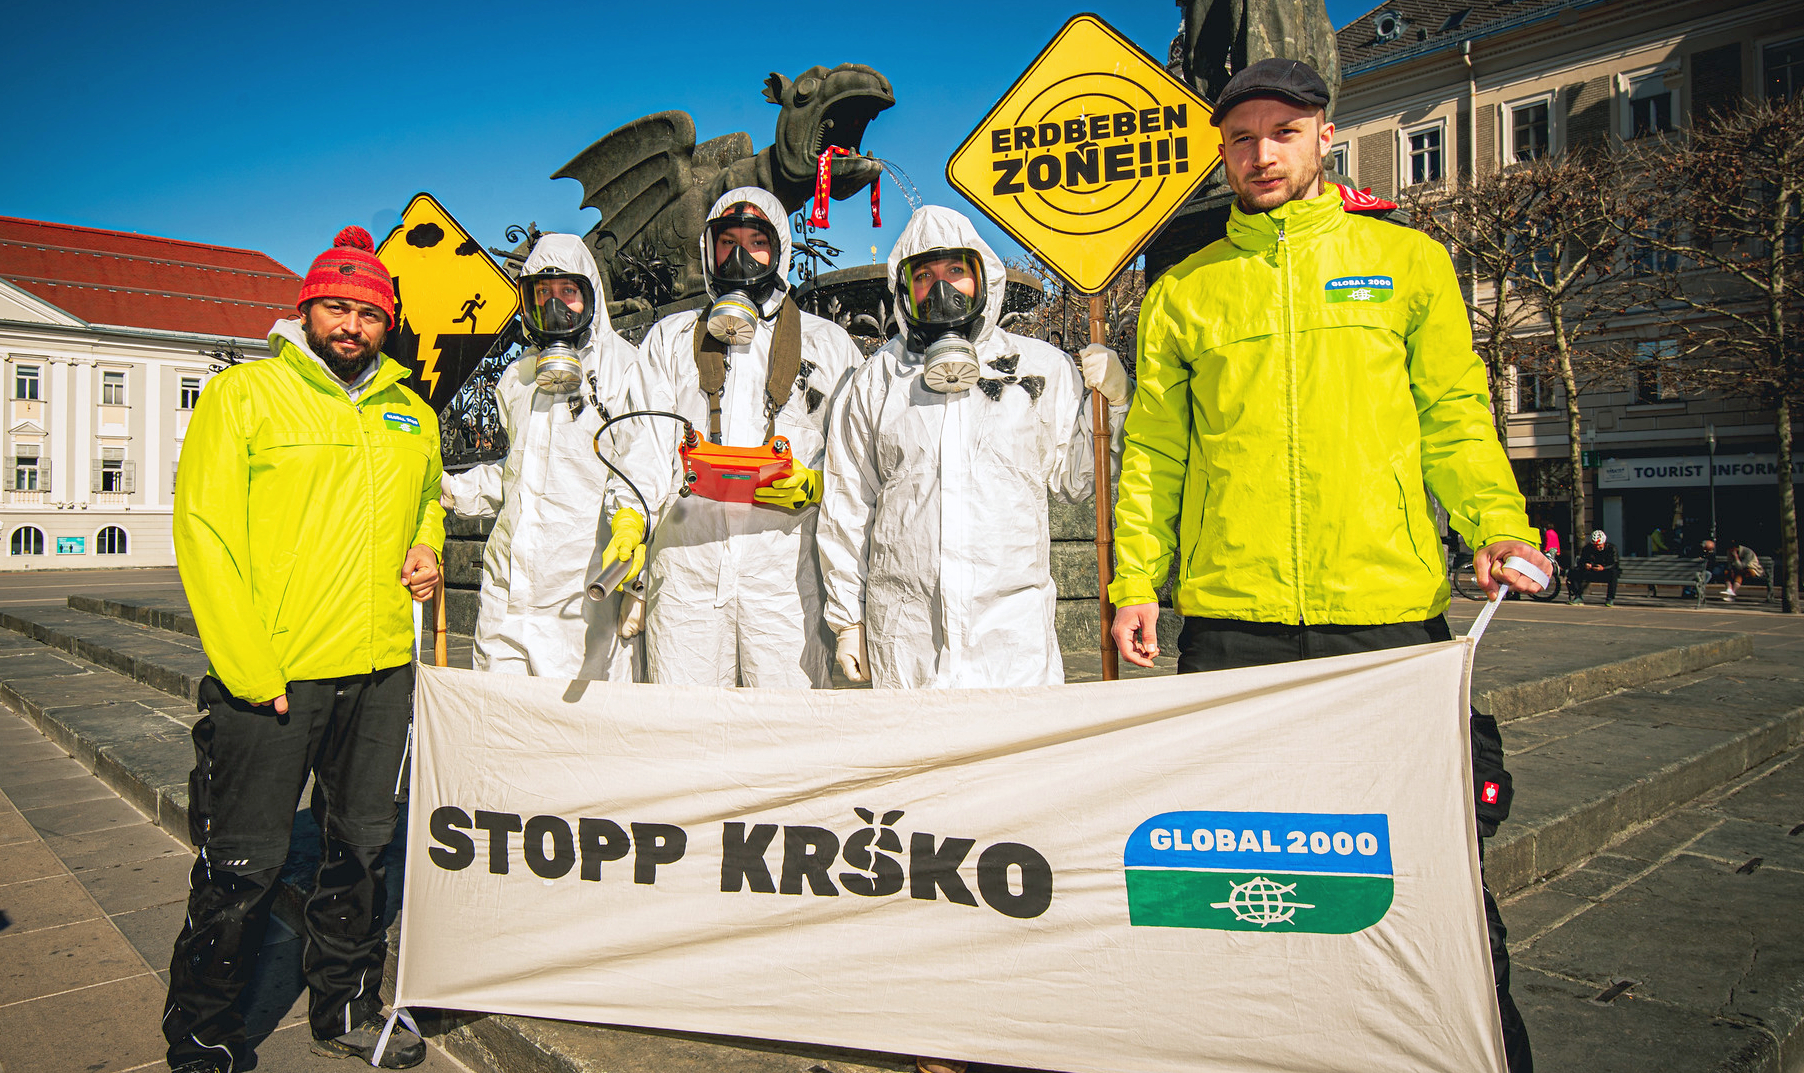 Foto: Aktion Stopp AKW Krsko (c) GLOBAL 2000 - Christopher Glanzl